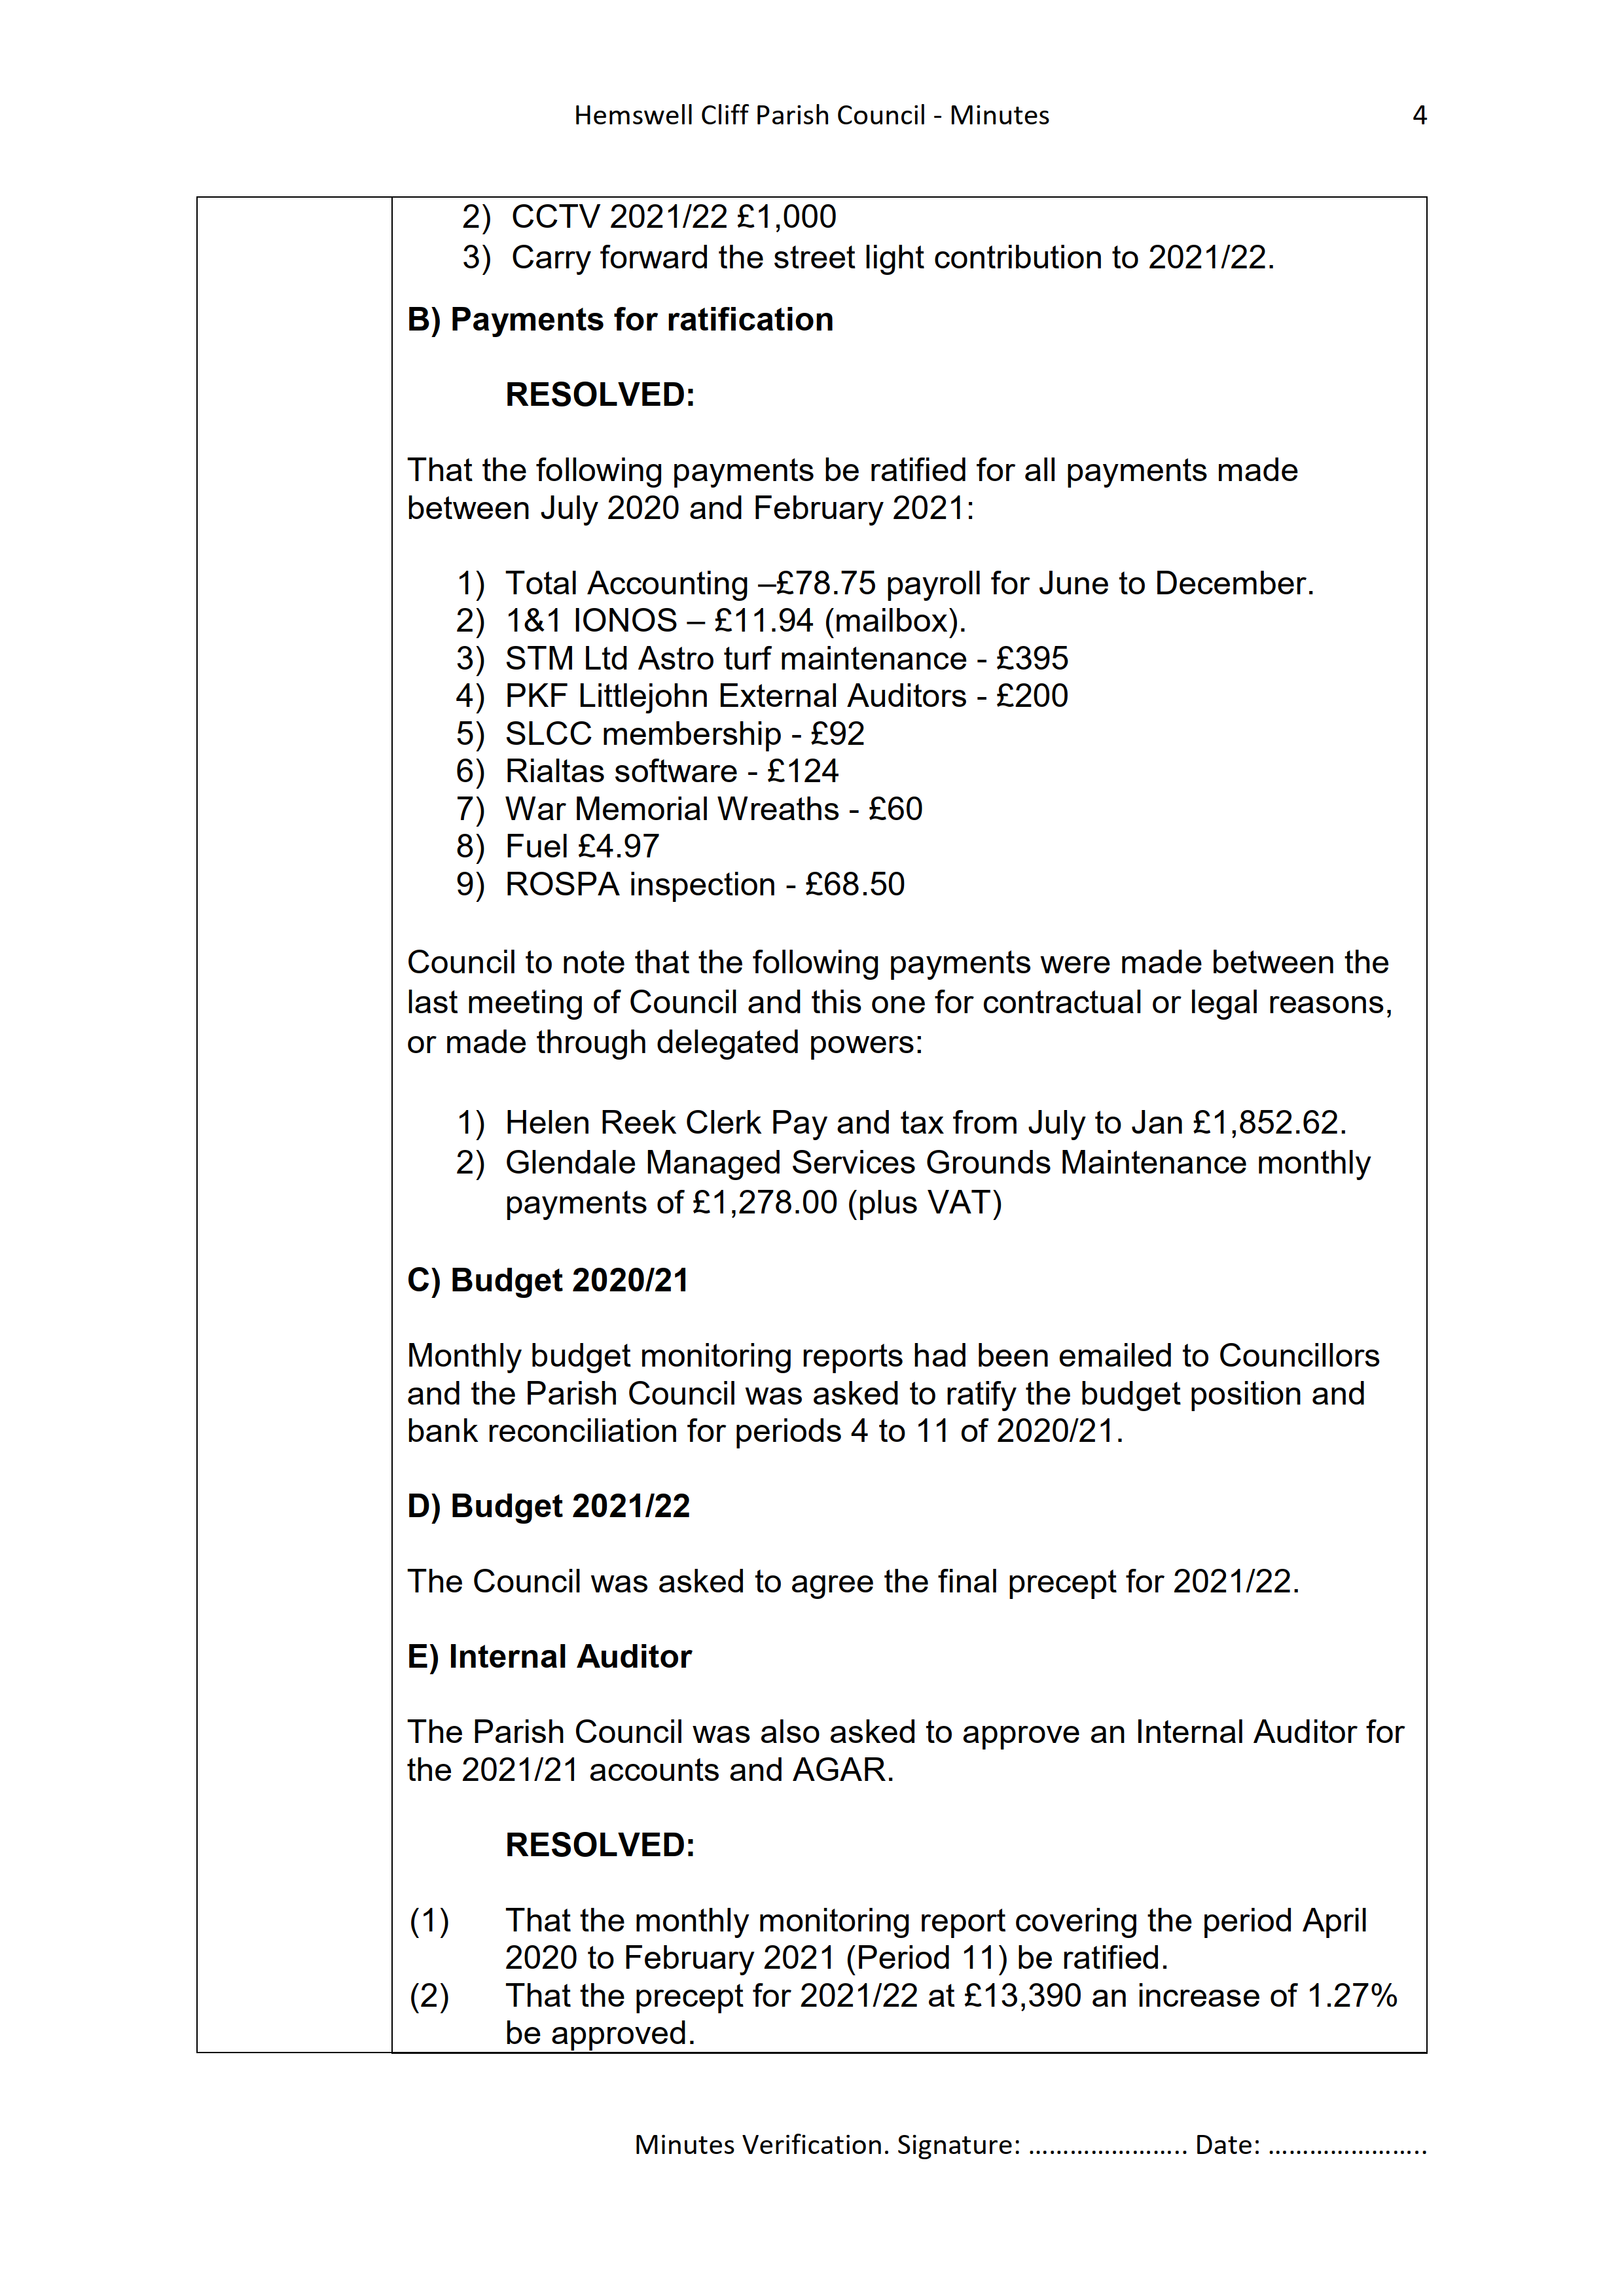 HCPC_Minutes_15.03.21_4.png